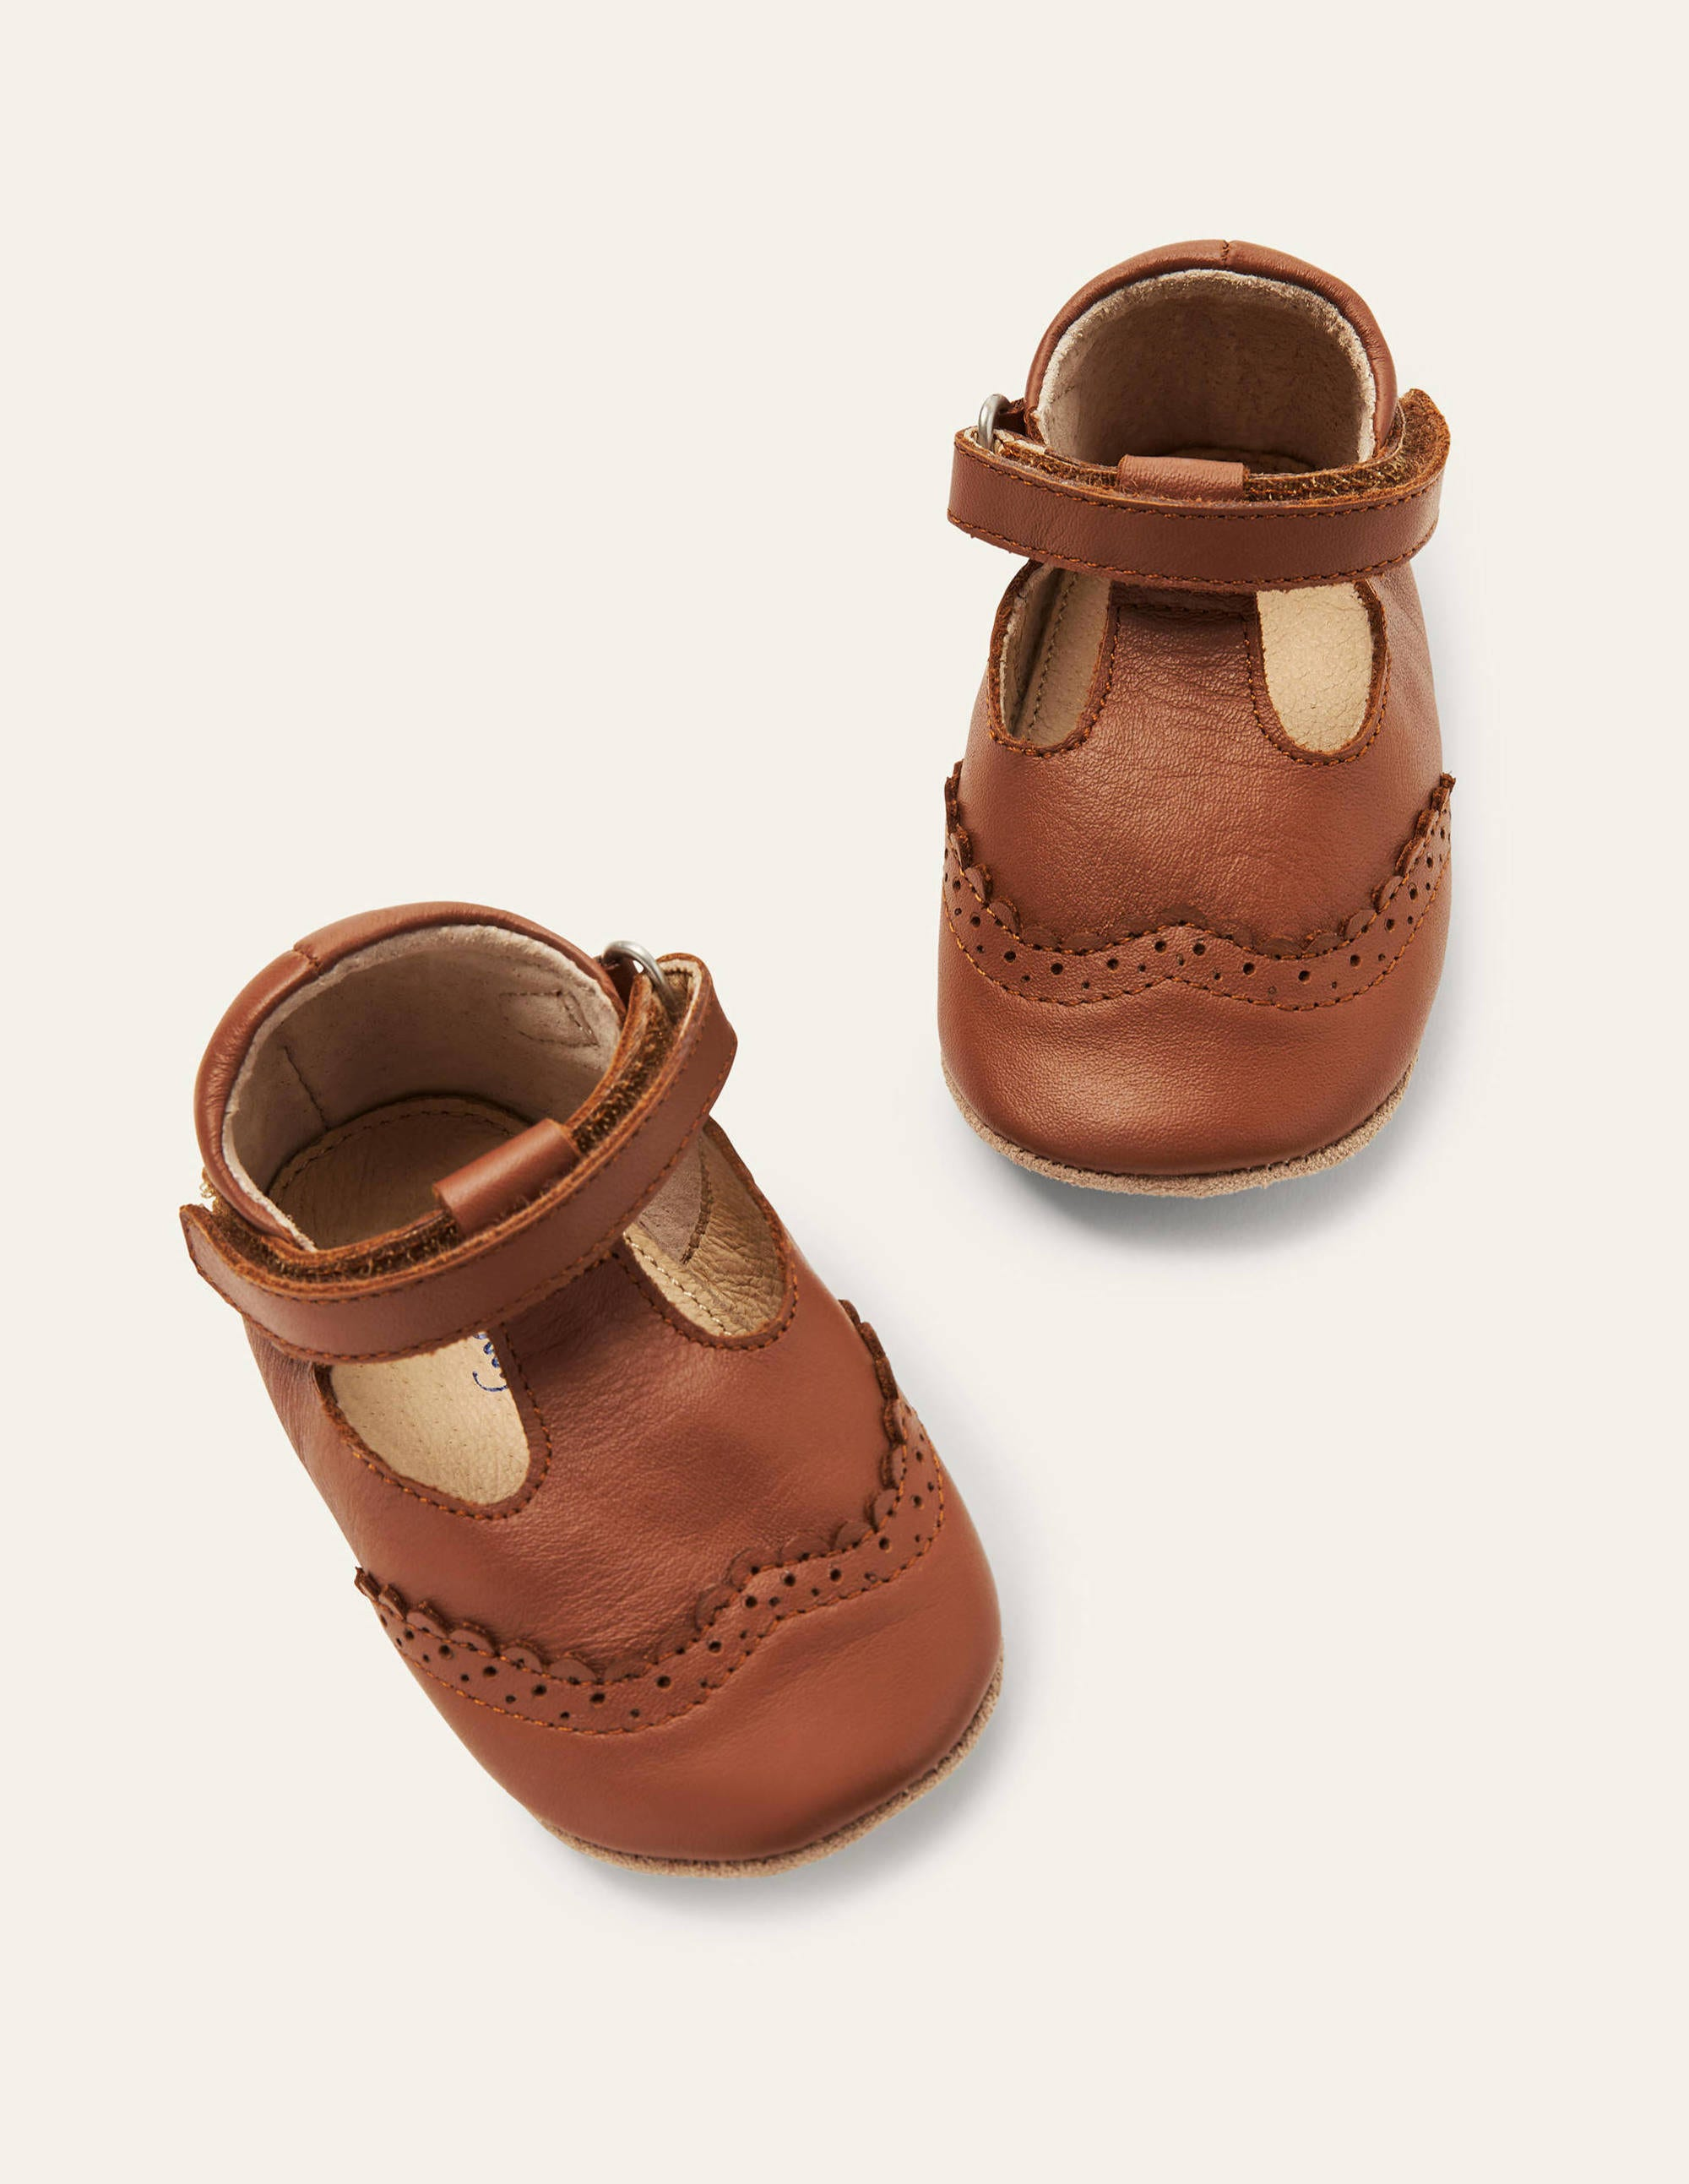 Boden Leather Baby Shoes - Tan